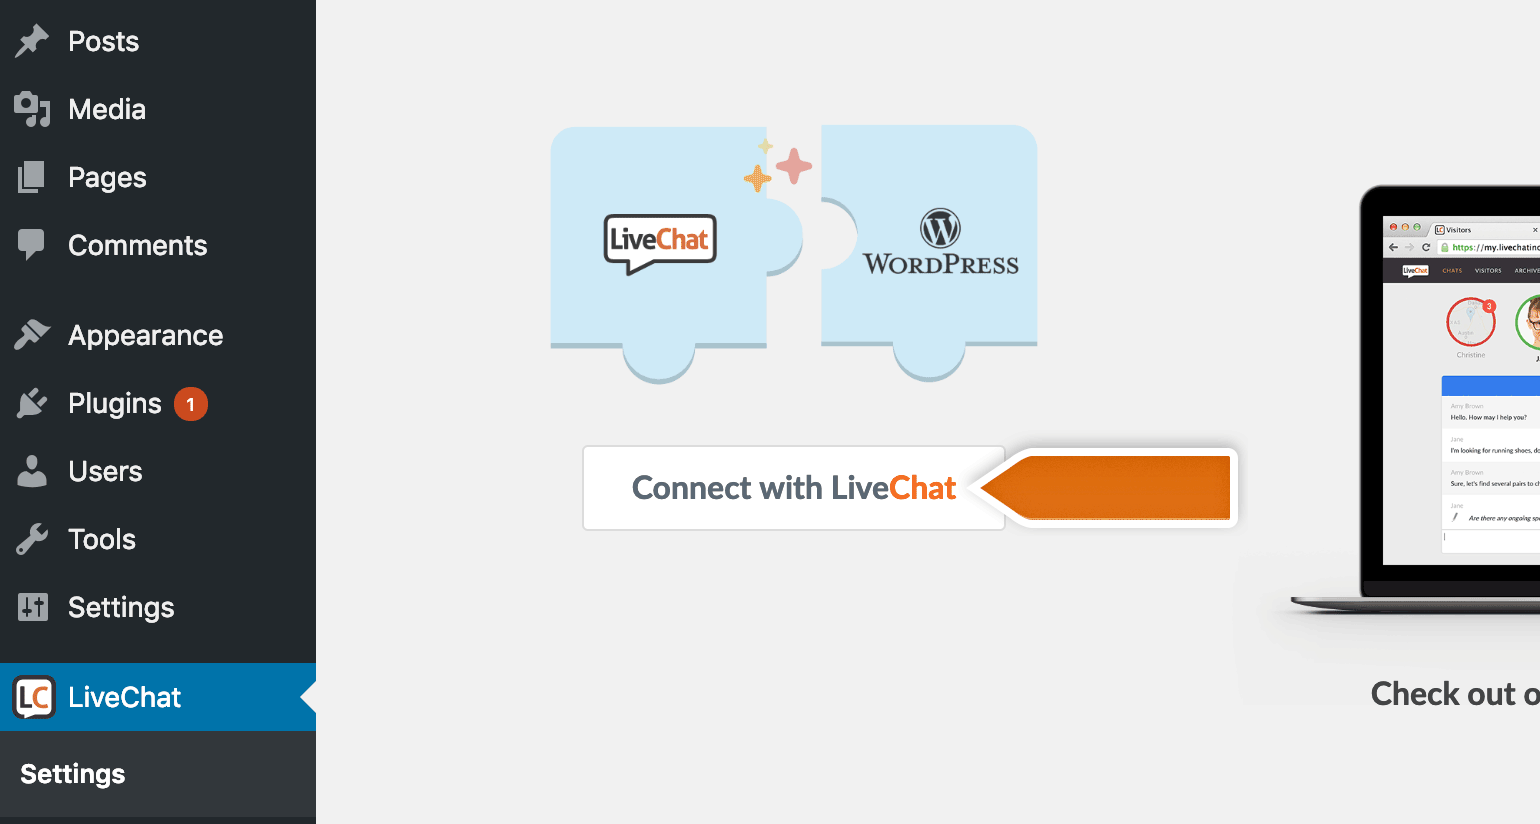 Click on connect with LiveChat